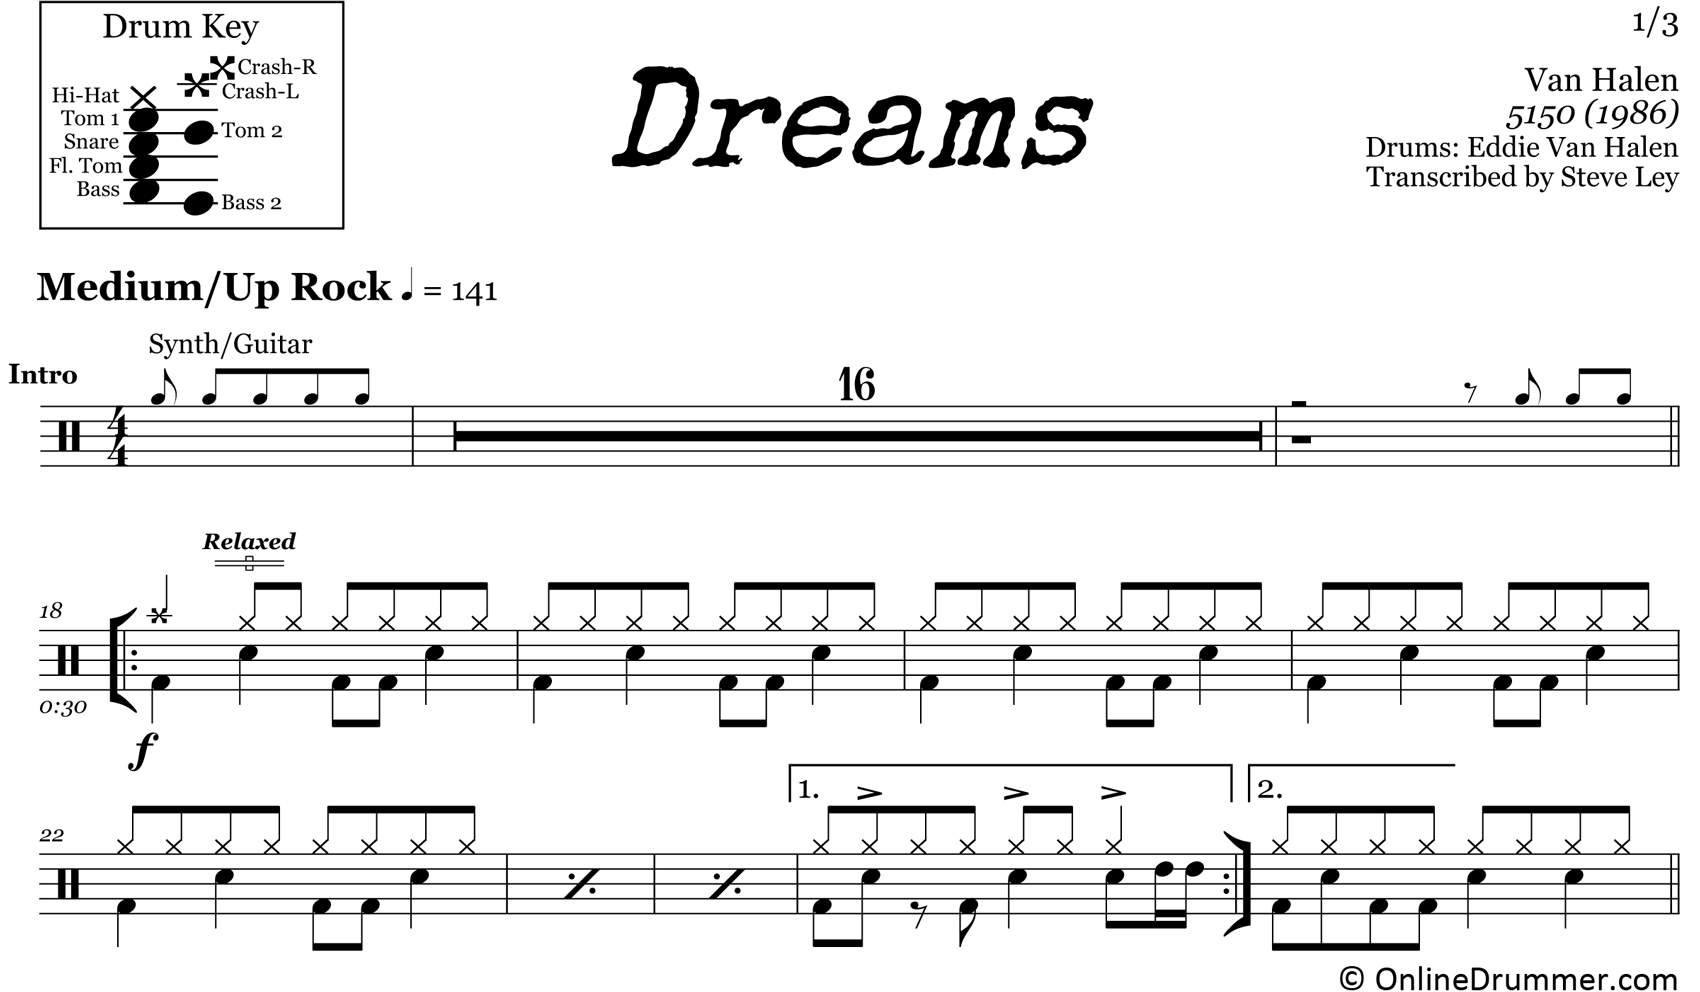 Dreams - Van Halen - Drum Sheet Music